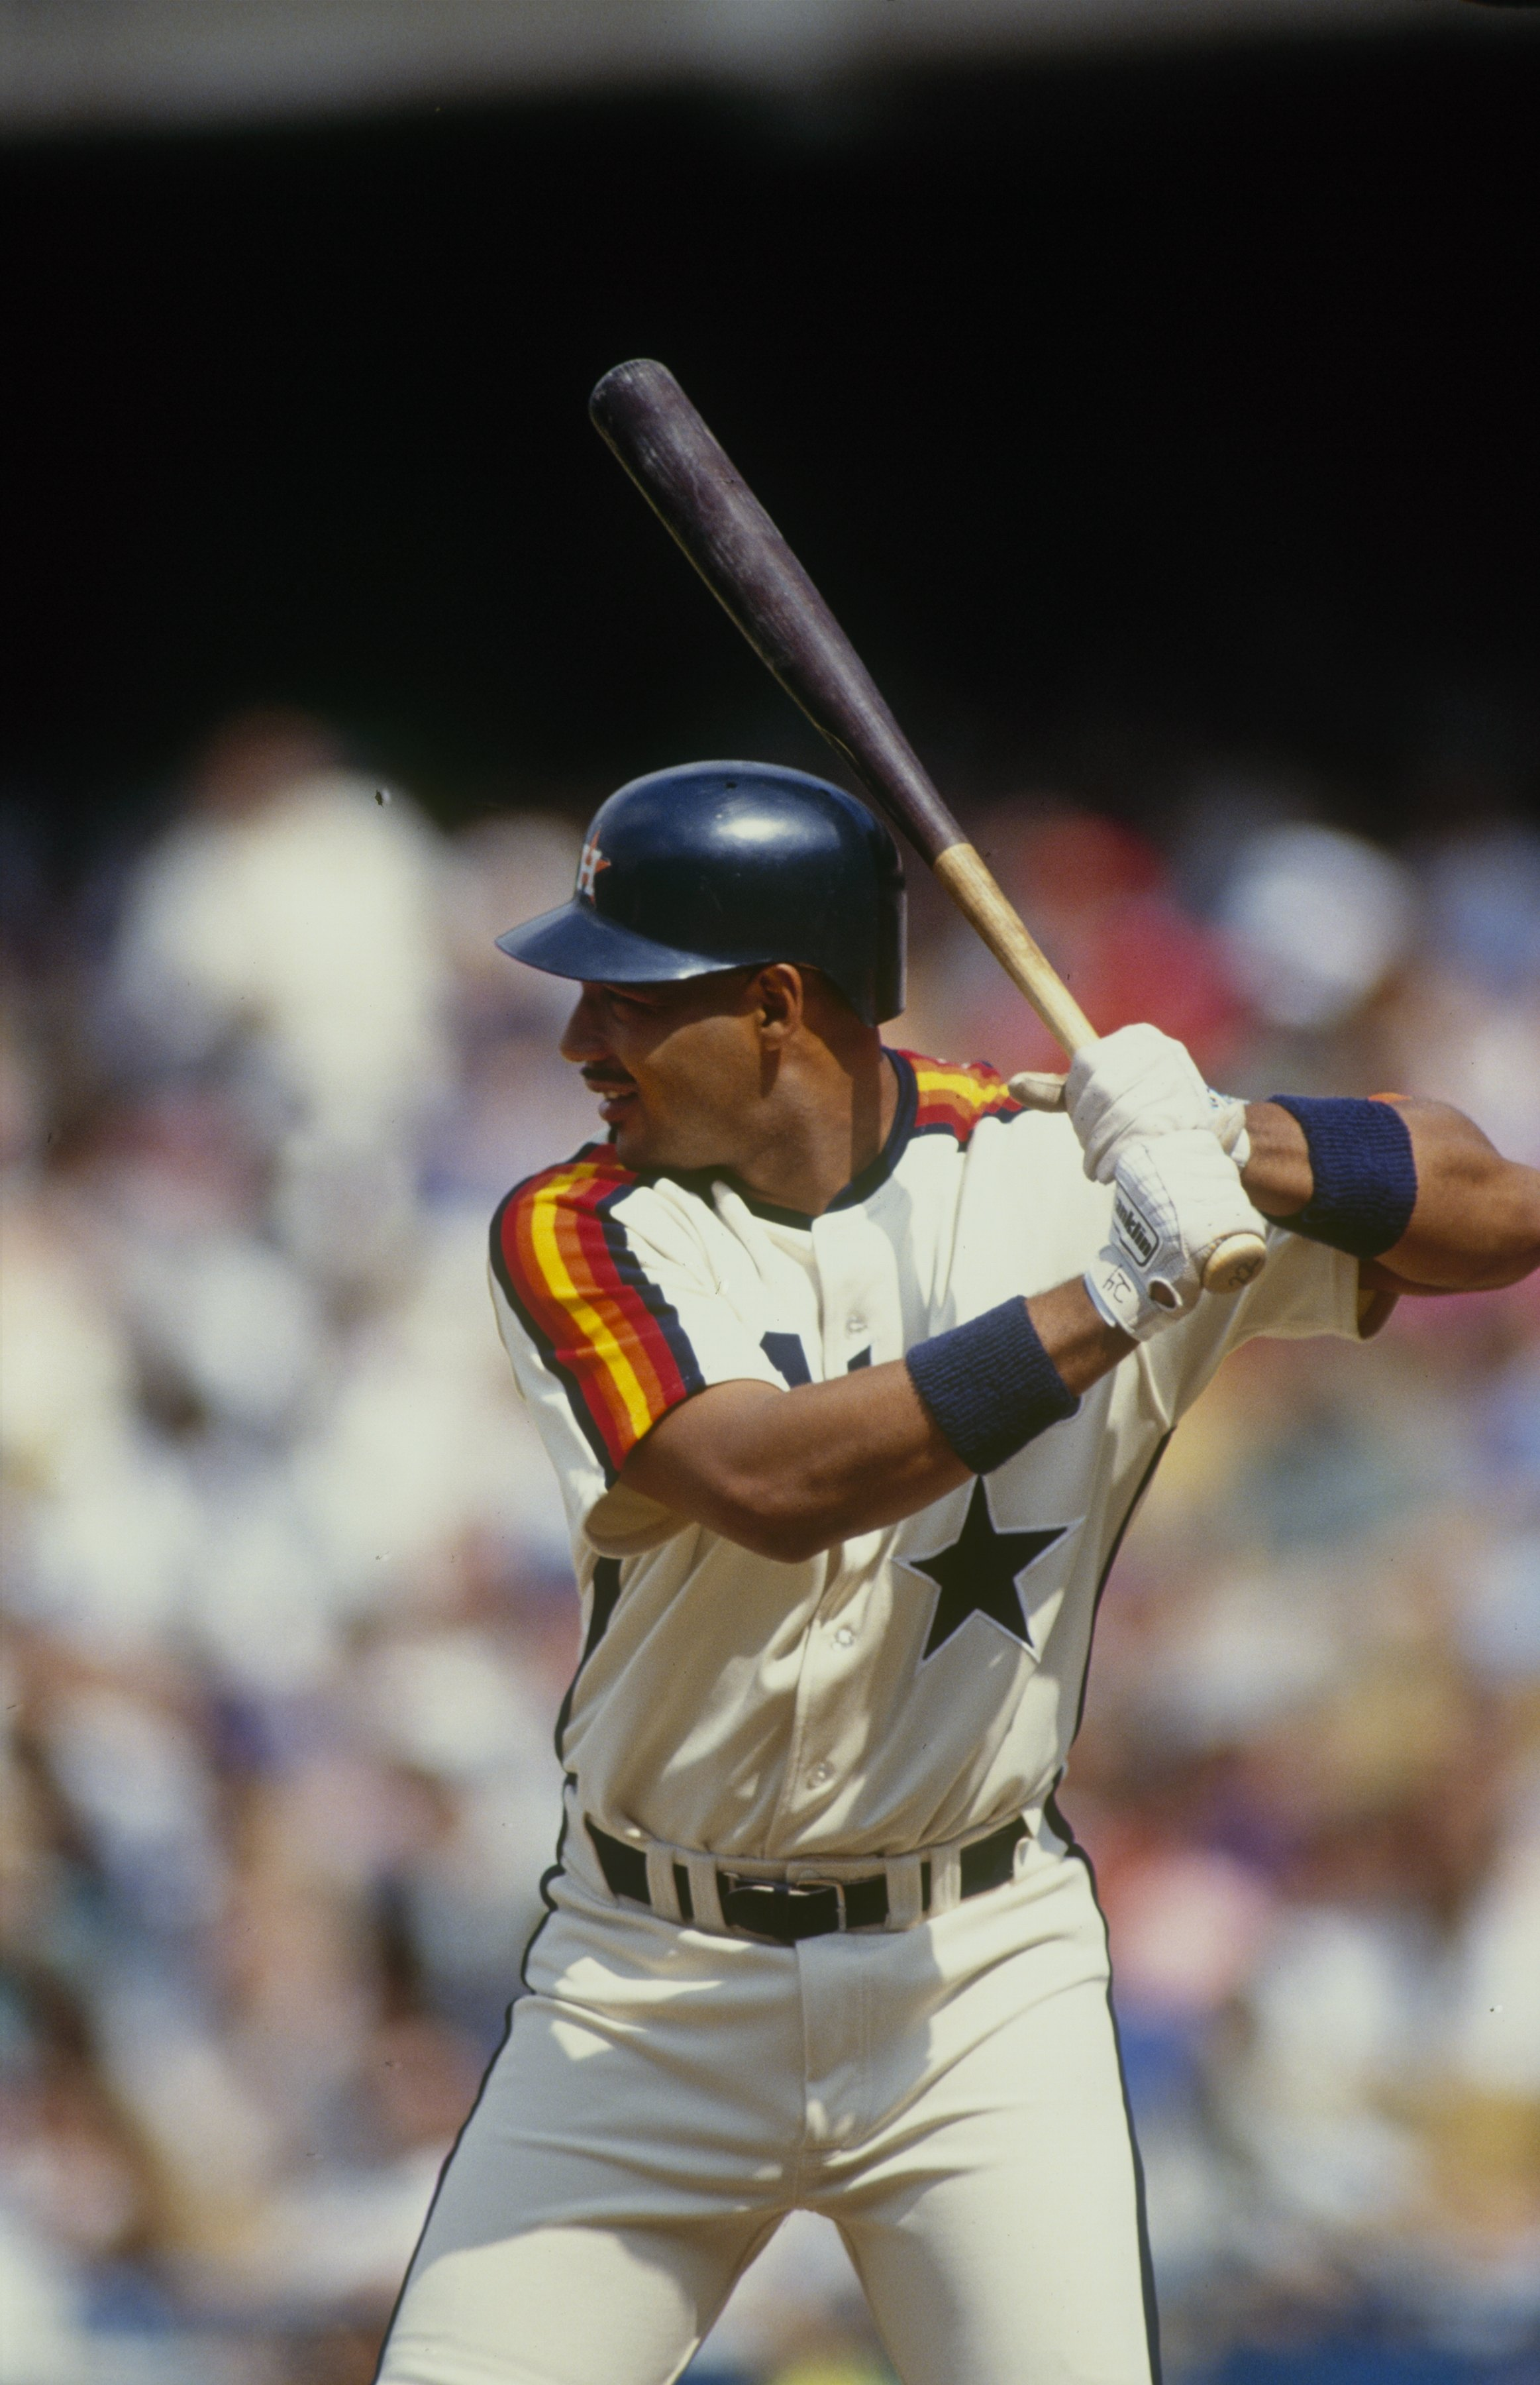 1990 - Franklin Stubbs #24 of the Houston Astros stands ready at bat during a 1990 season game. Franklin Stubbs played for the Astros in 1990. (Photo by: Getty Images)